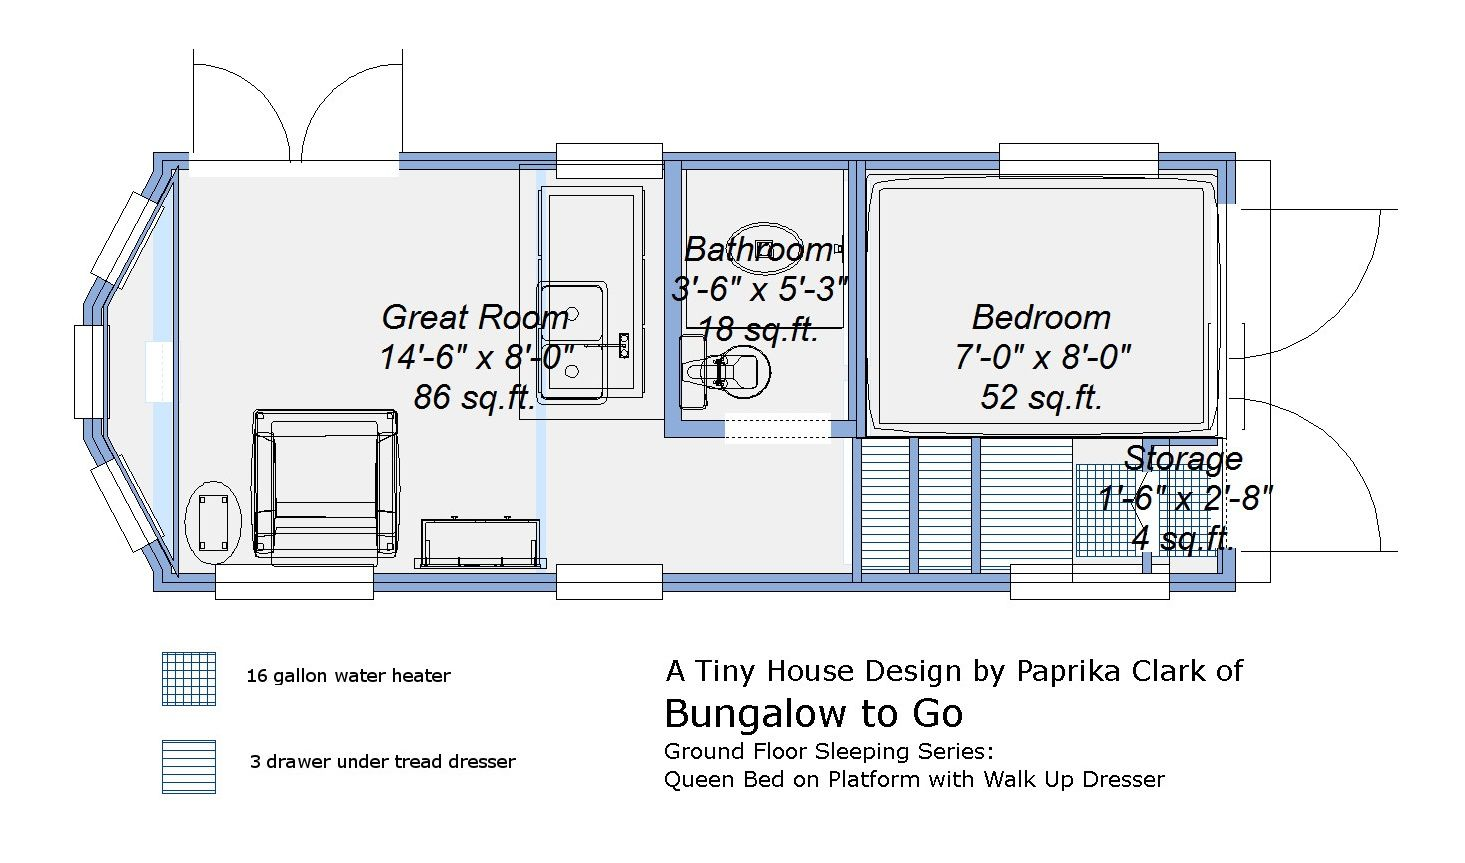 Free Tiny House Trailer Plans Ground Floor Sleeping Plans Queen Bed On Platform With Walk Up Tiny House Trailer Tiny House Trailer Plans Tiny House Floor Plans